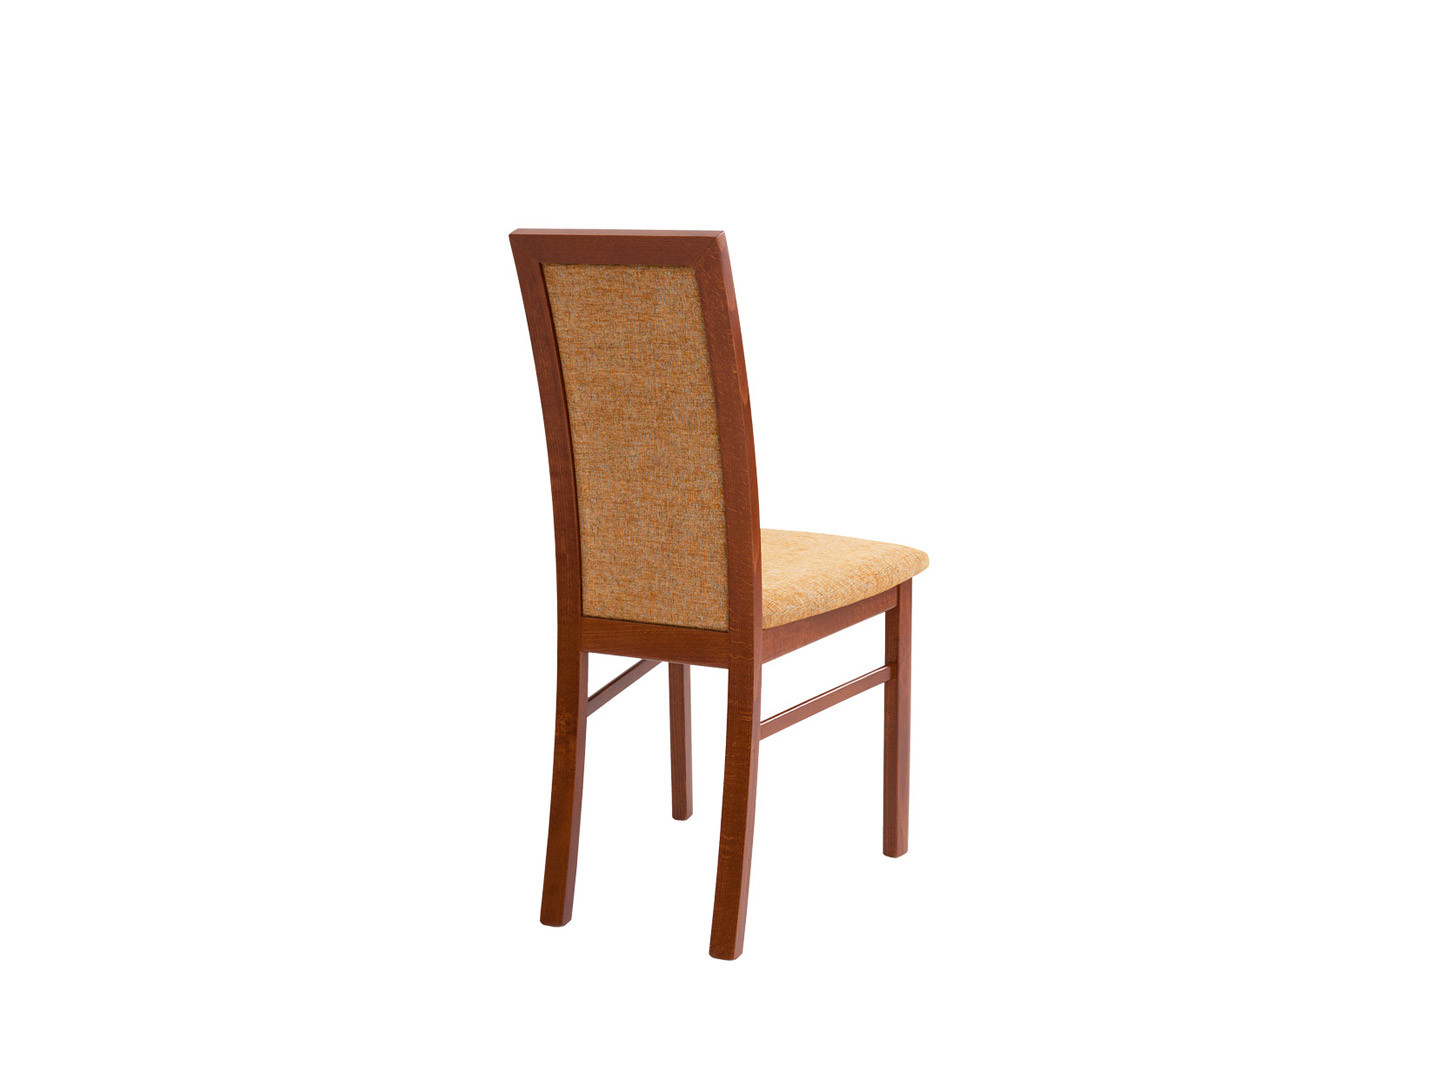 Chair Bolden 45cm x 96cm x 53cm – furniture store BRW